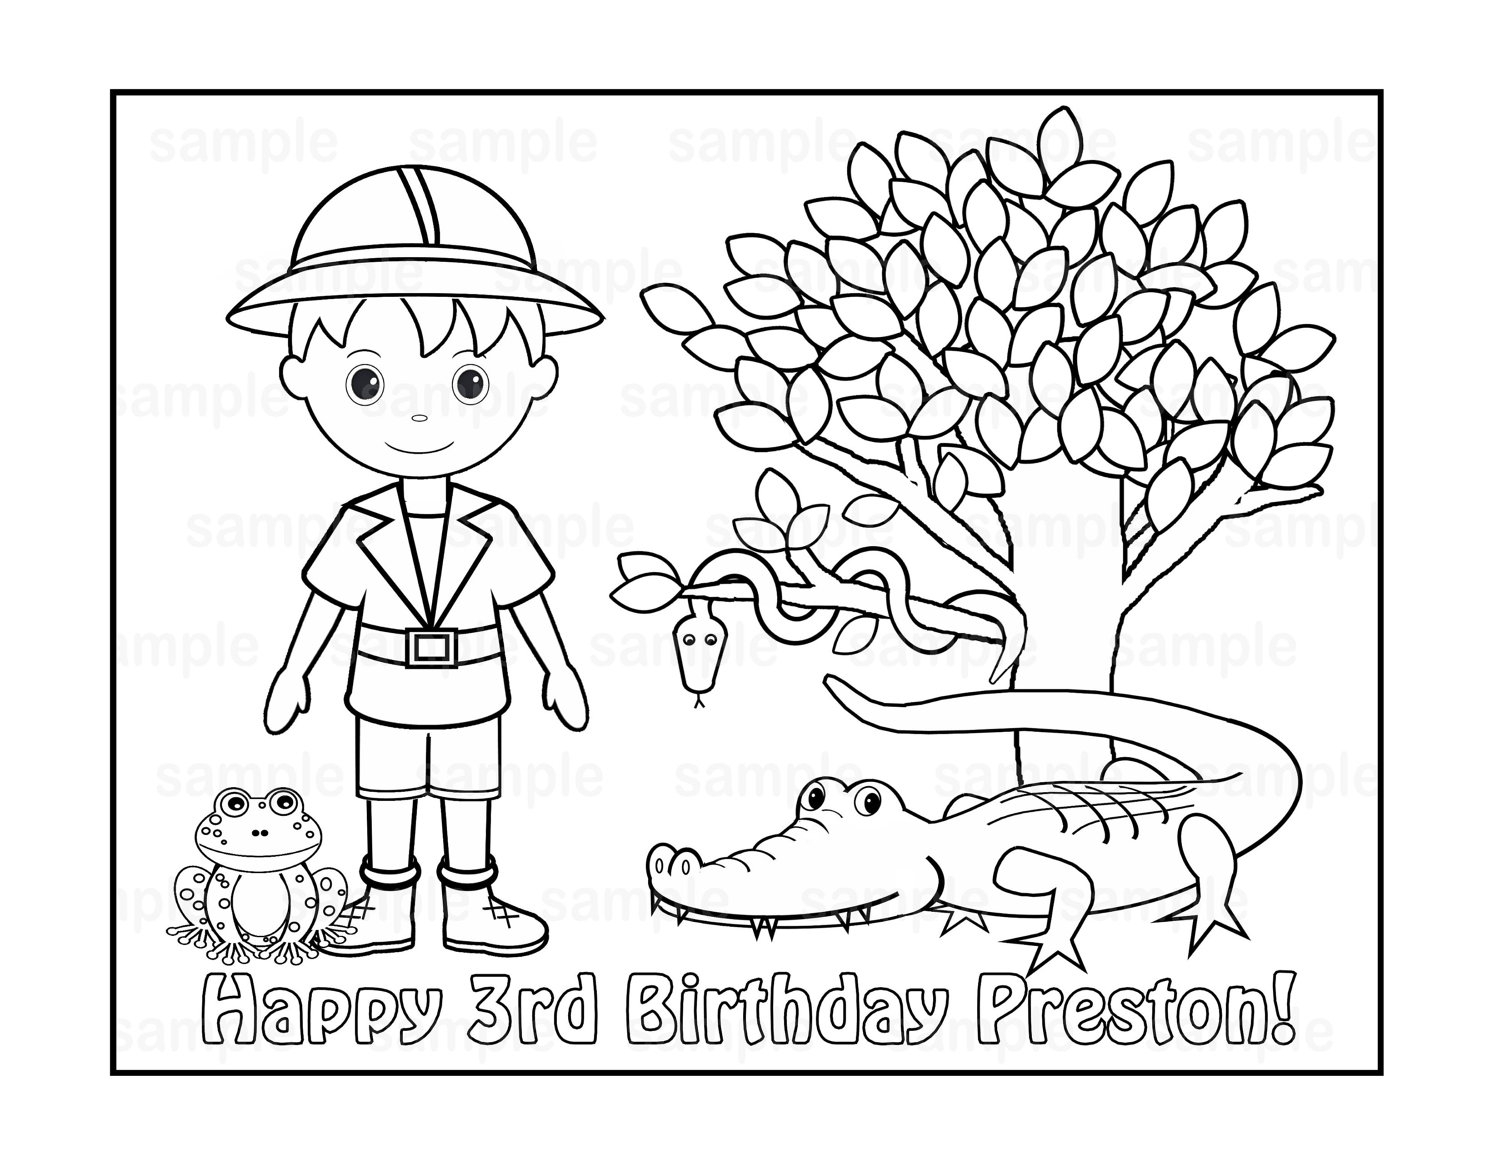 1500x1159 Custom Coloring Pages Free Zimeon Personalized